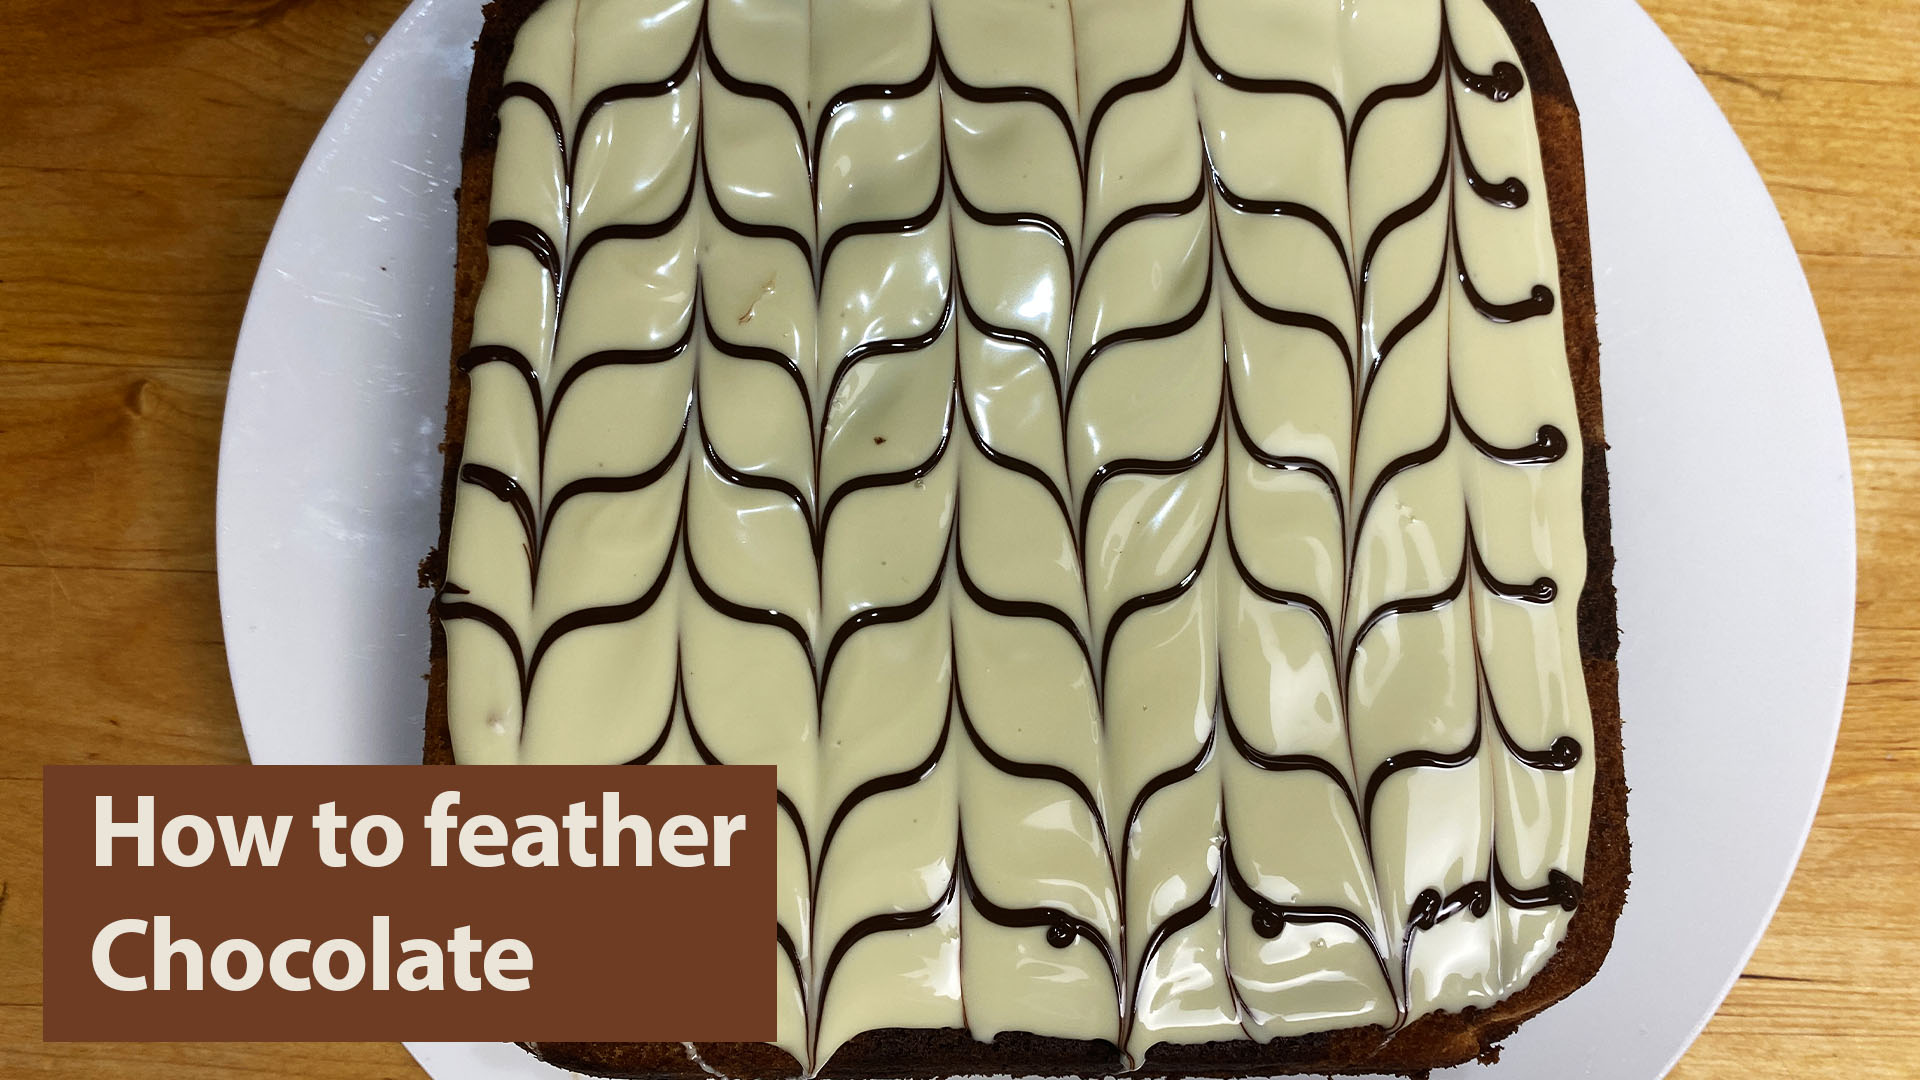 How to feather chocolate